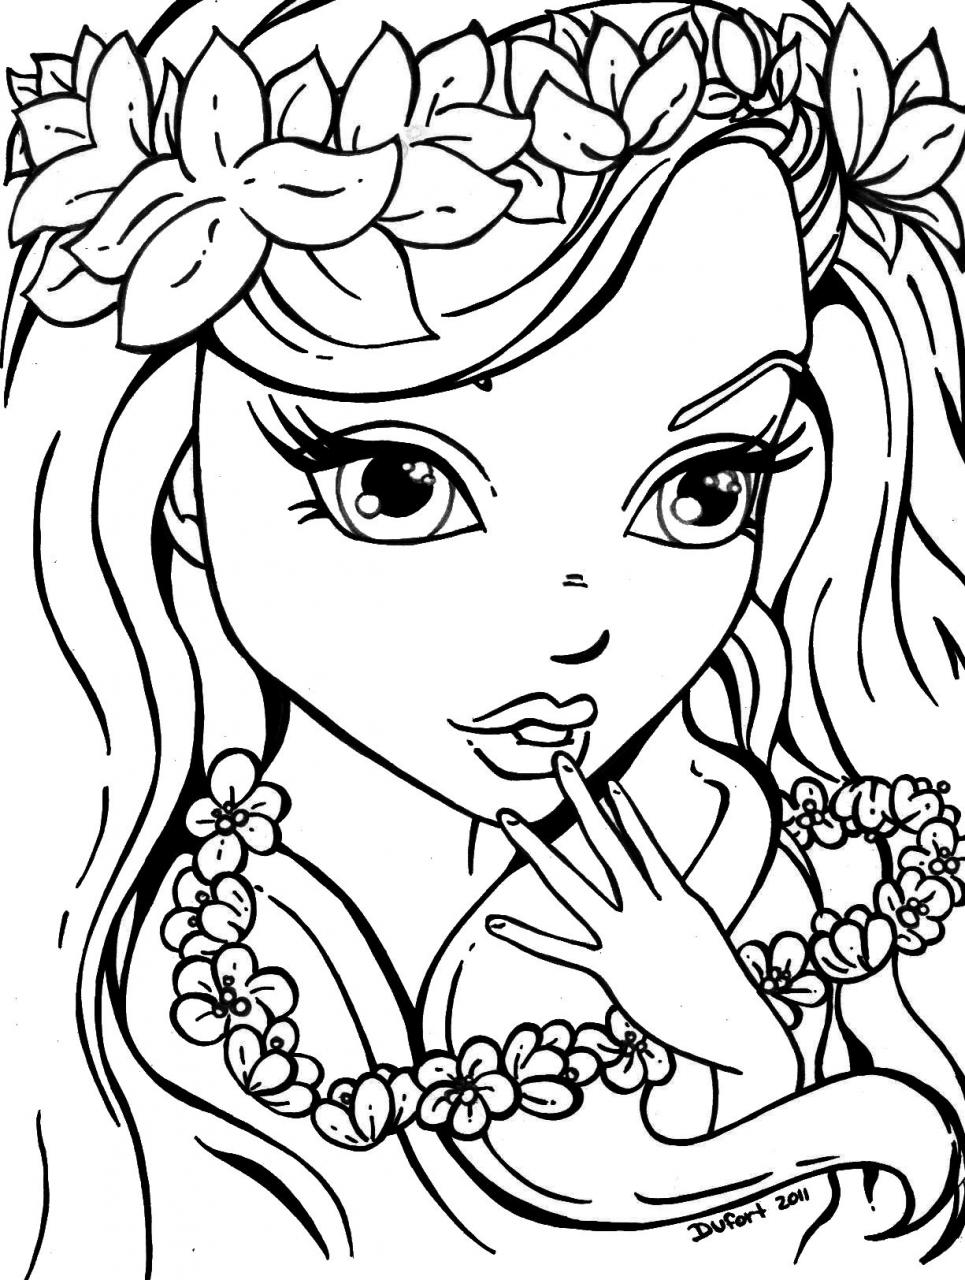 girl for coloring adult coloring page girl portrait and leaves colouring for girl coloring